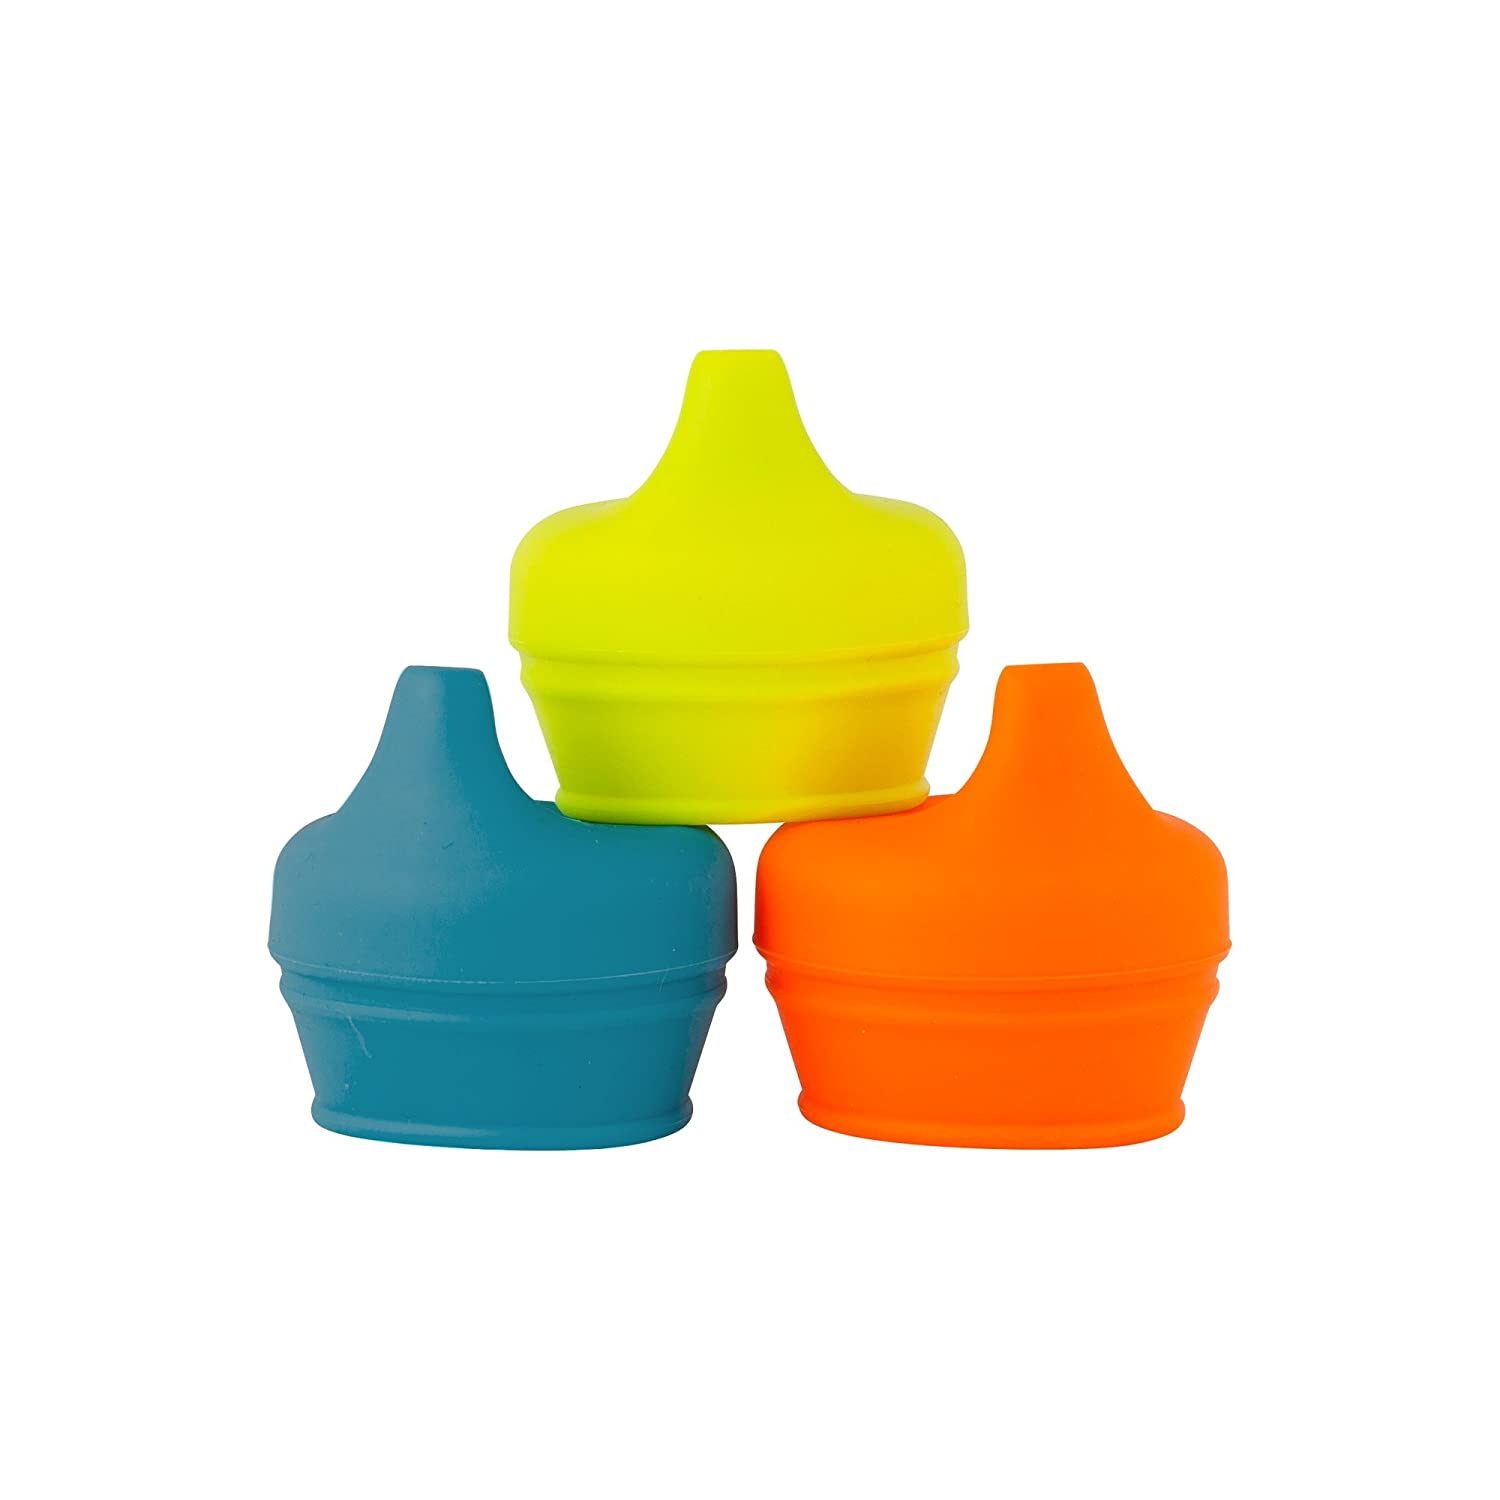 Boon Snug Silicone Sippy Lids Blue/Orange/Green B11147A